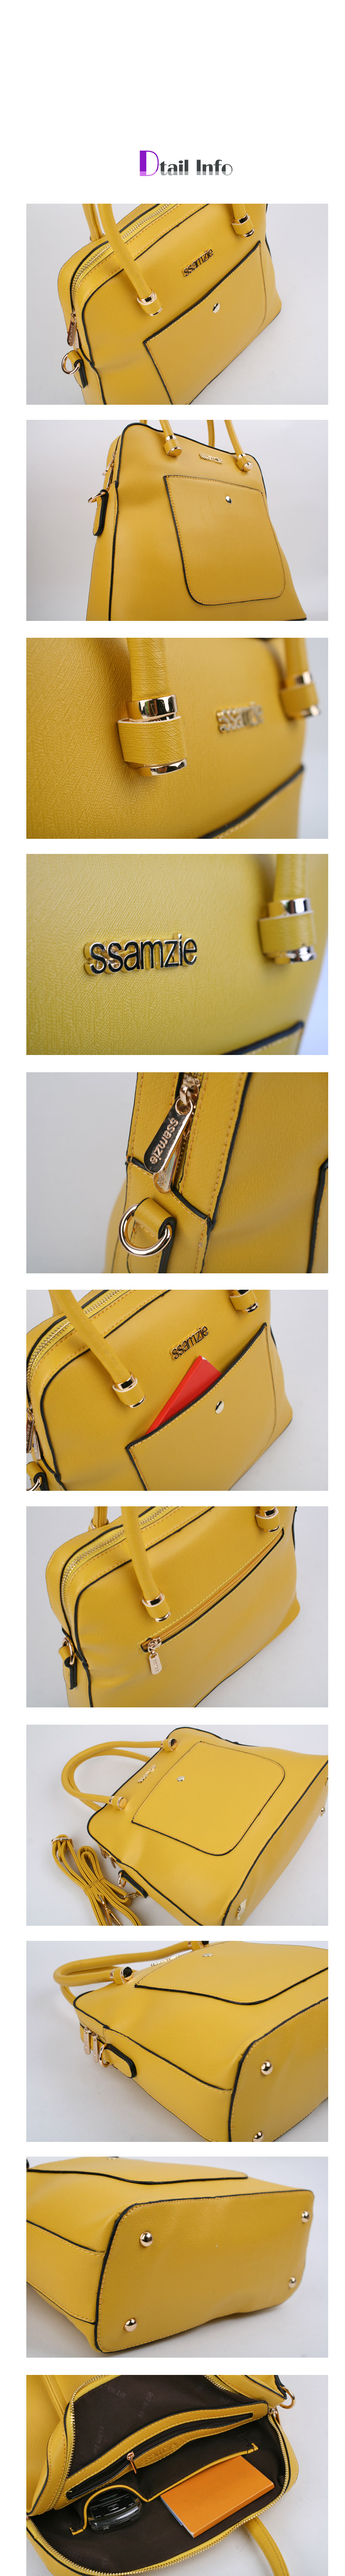 ssamzie handbag no.SSAMZIE-610view-1